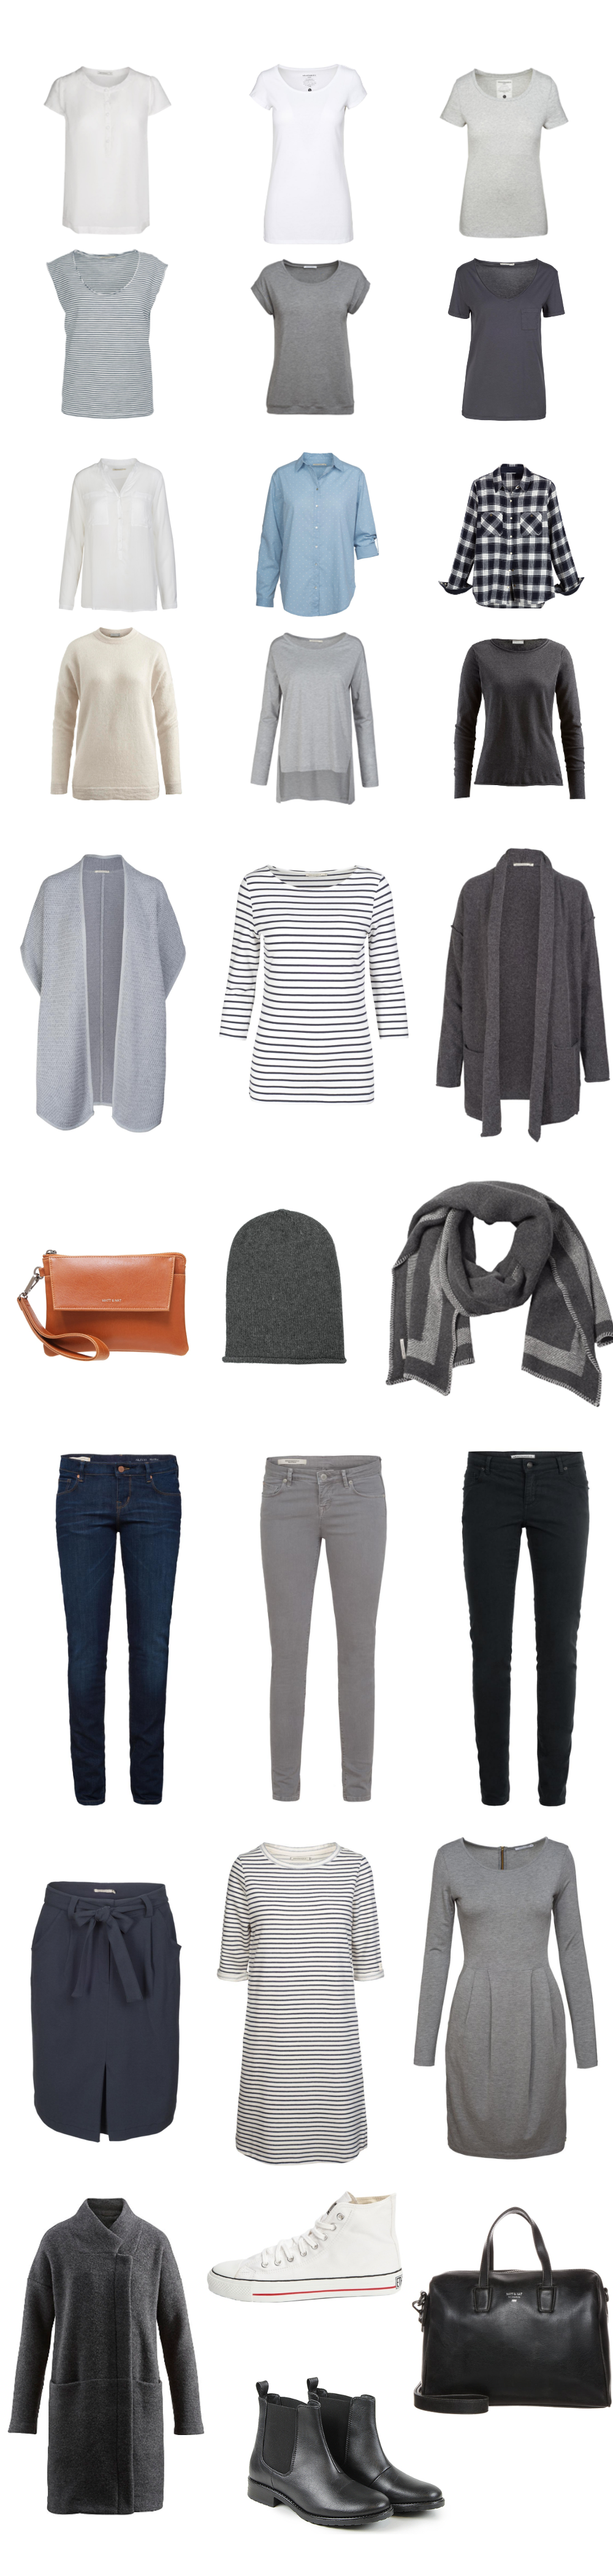 capsule-wardrobe-winter-8